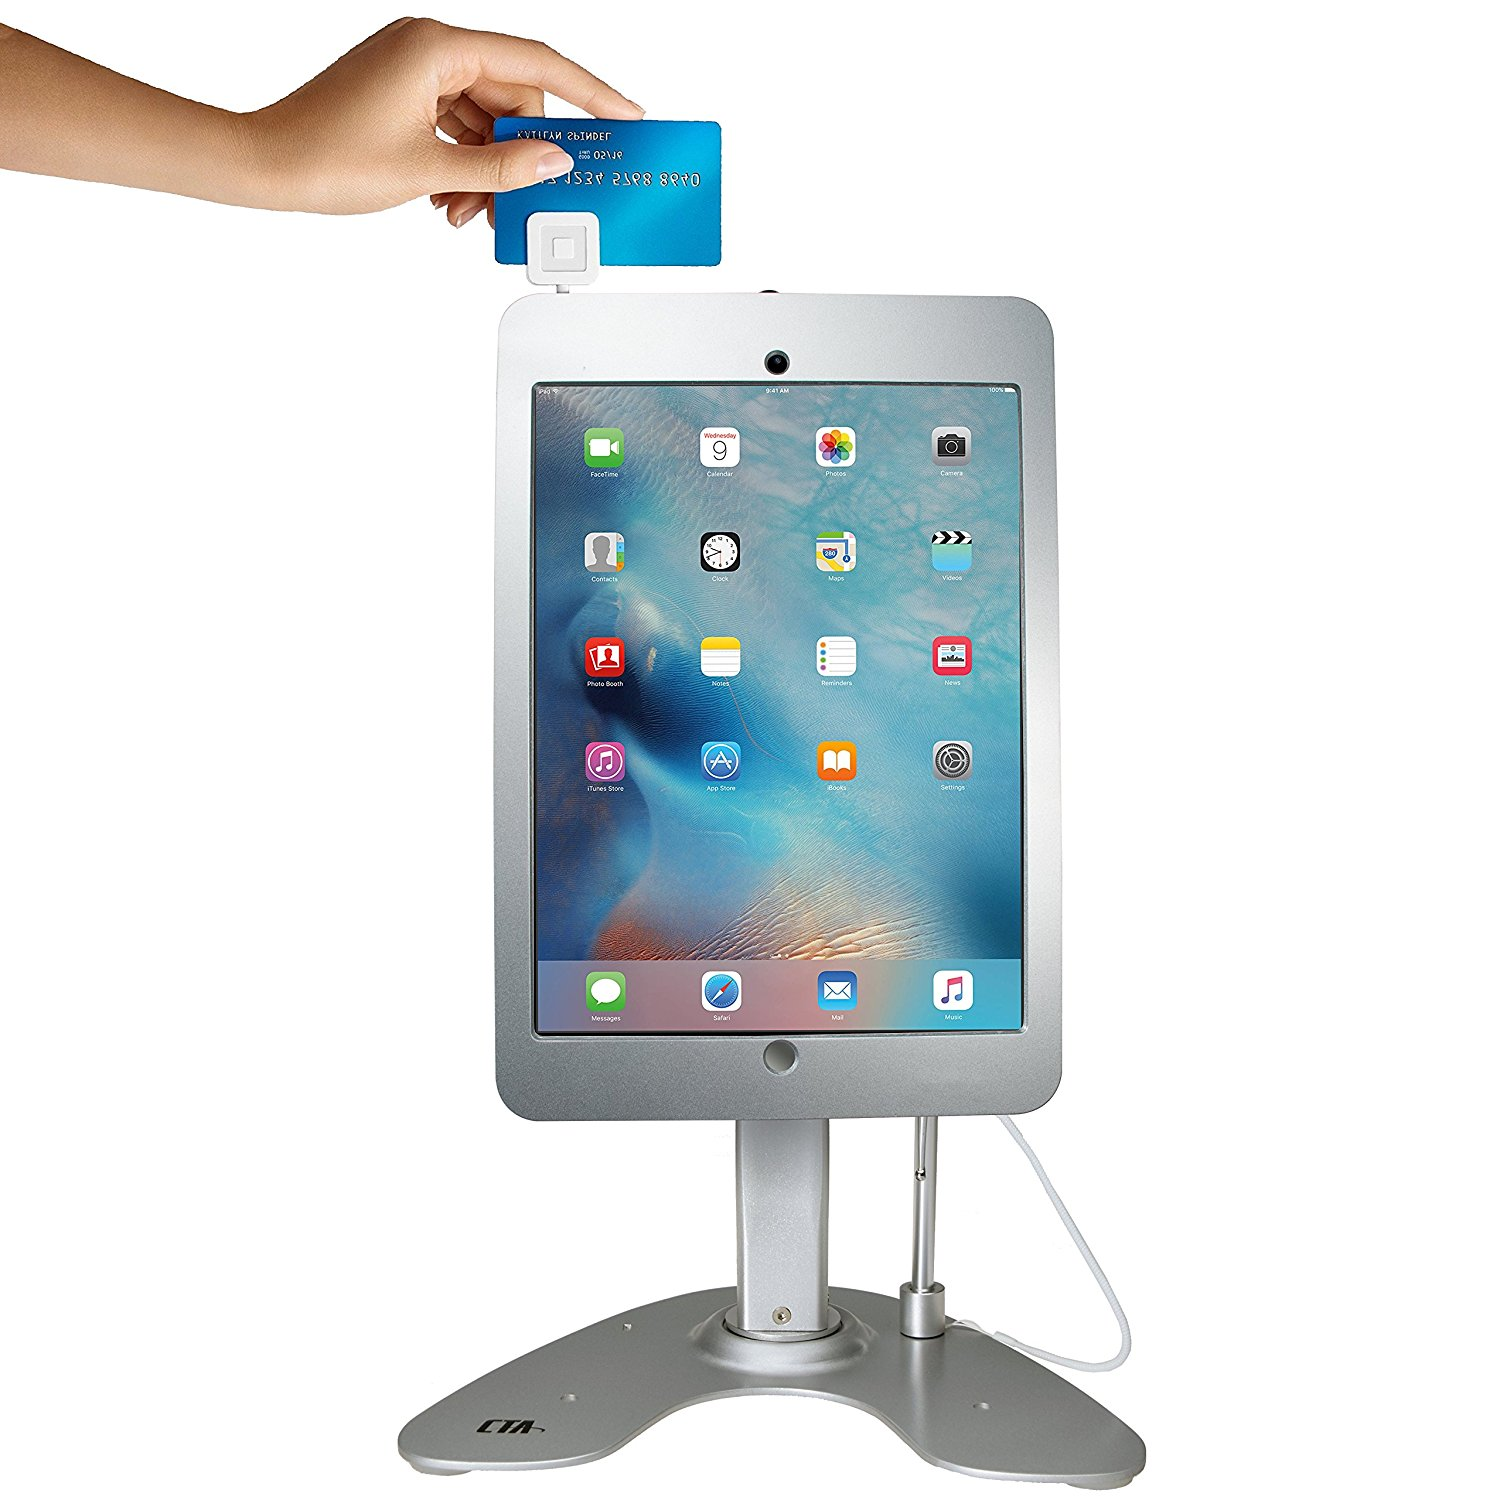 CTA Digital Anti-Theft Security Kiosk Stand for iPad Pro 12.9